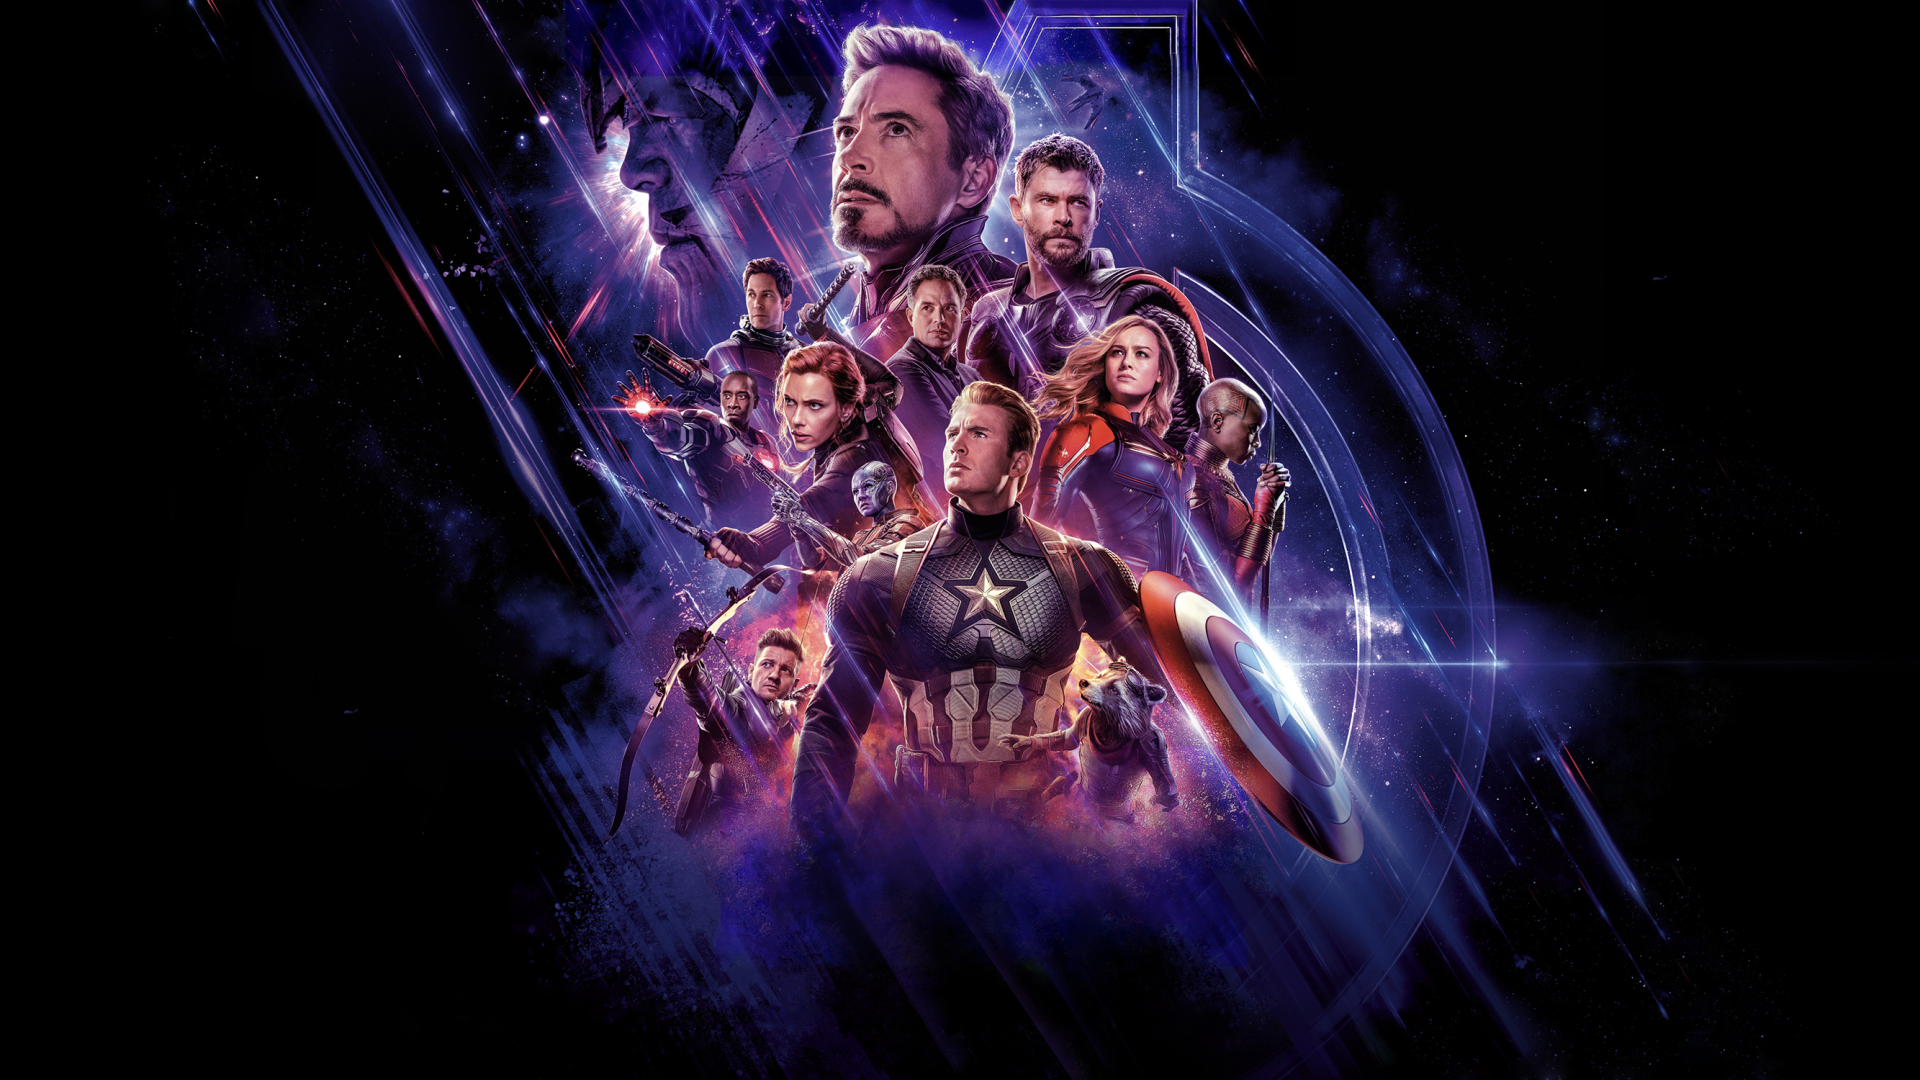 Download Avengers Endgame Wallpaper 4k For Android Download